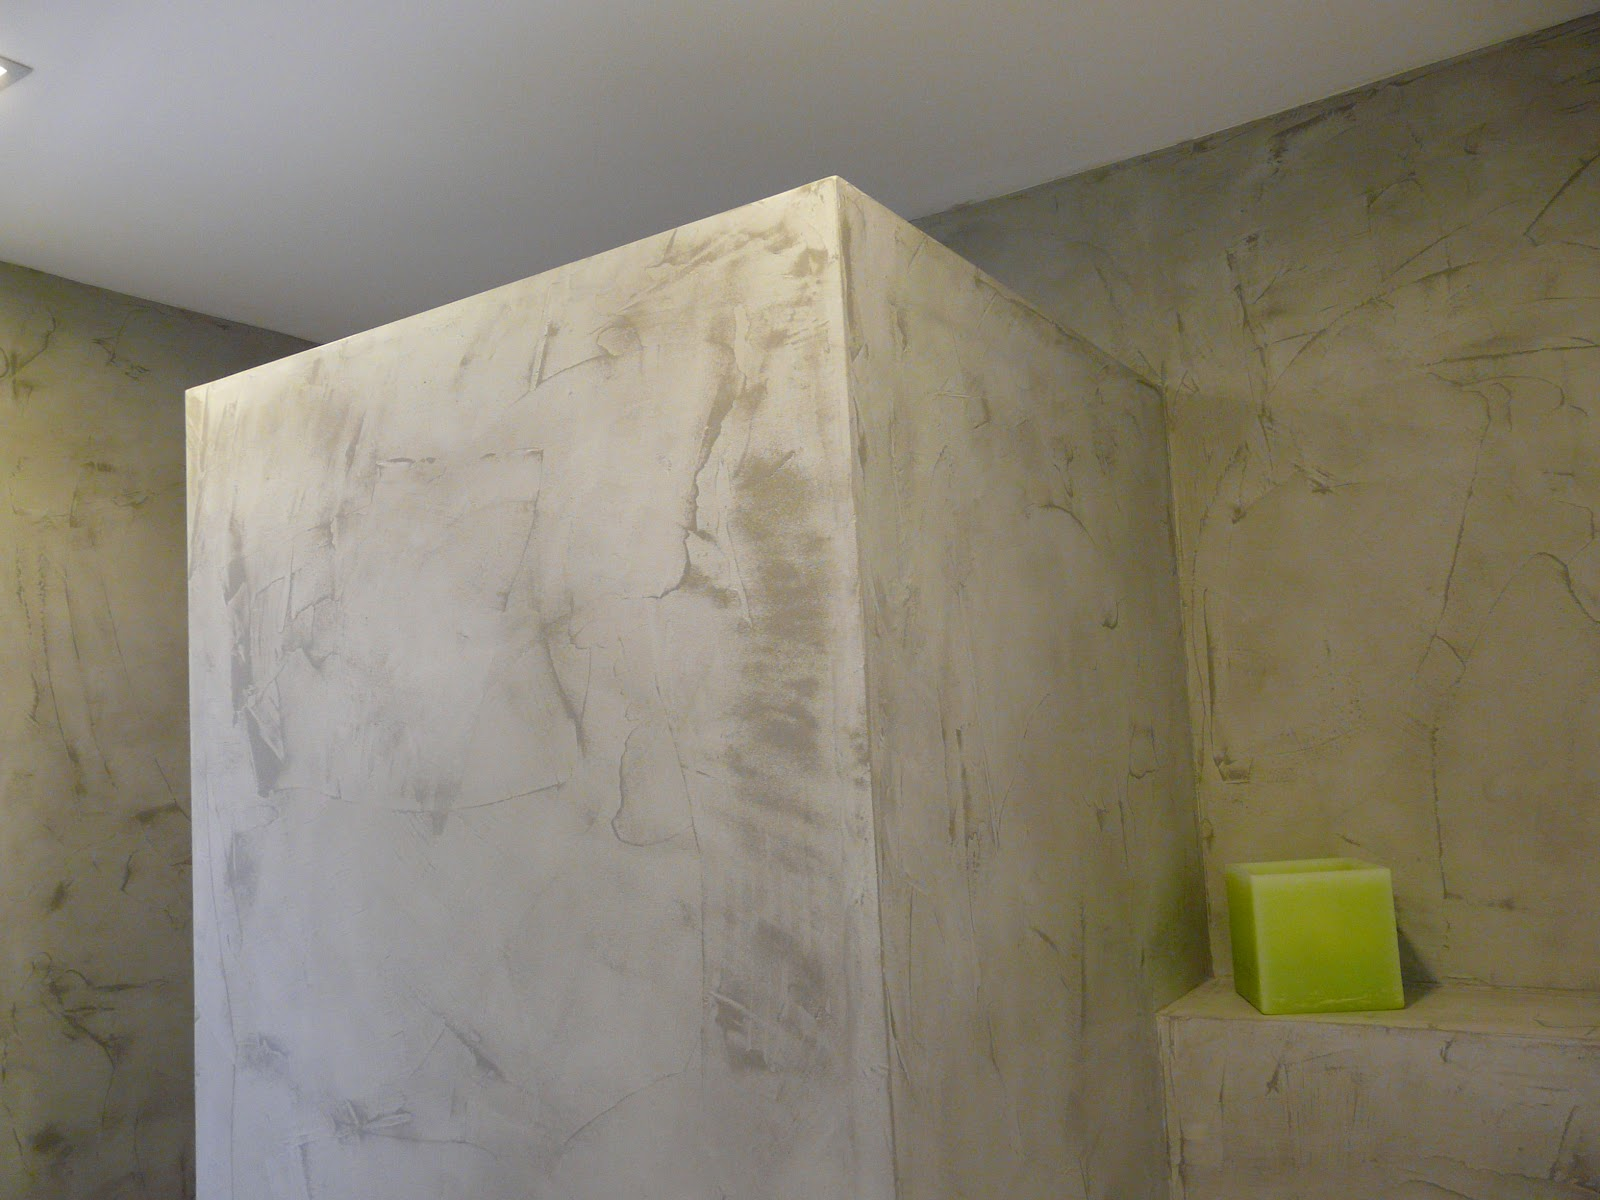 Wand wohndesign beton cire august 2012 - Wand in betonoptik ...